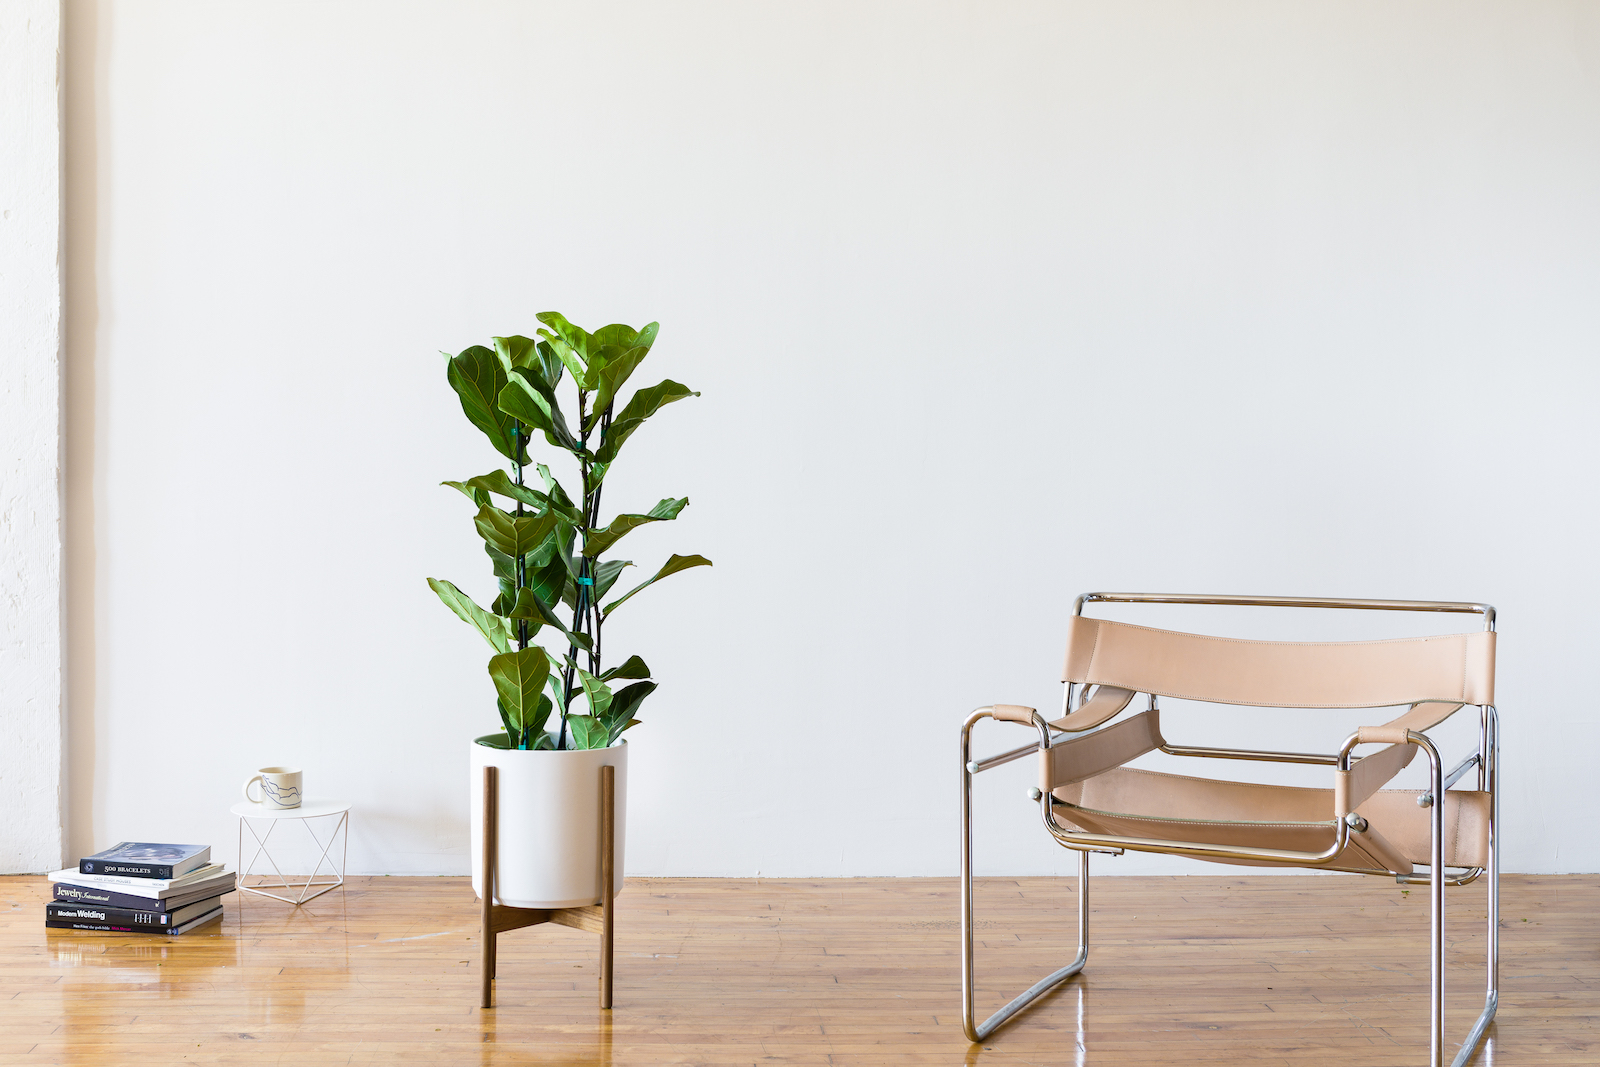 The Fiddle Leaf Fig is one of the most popular office plants for its sheer beauty.